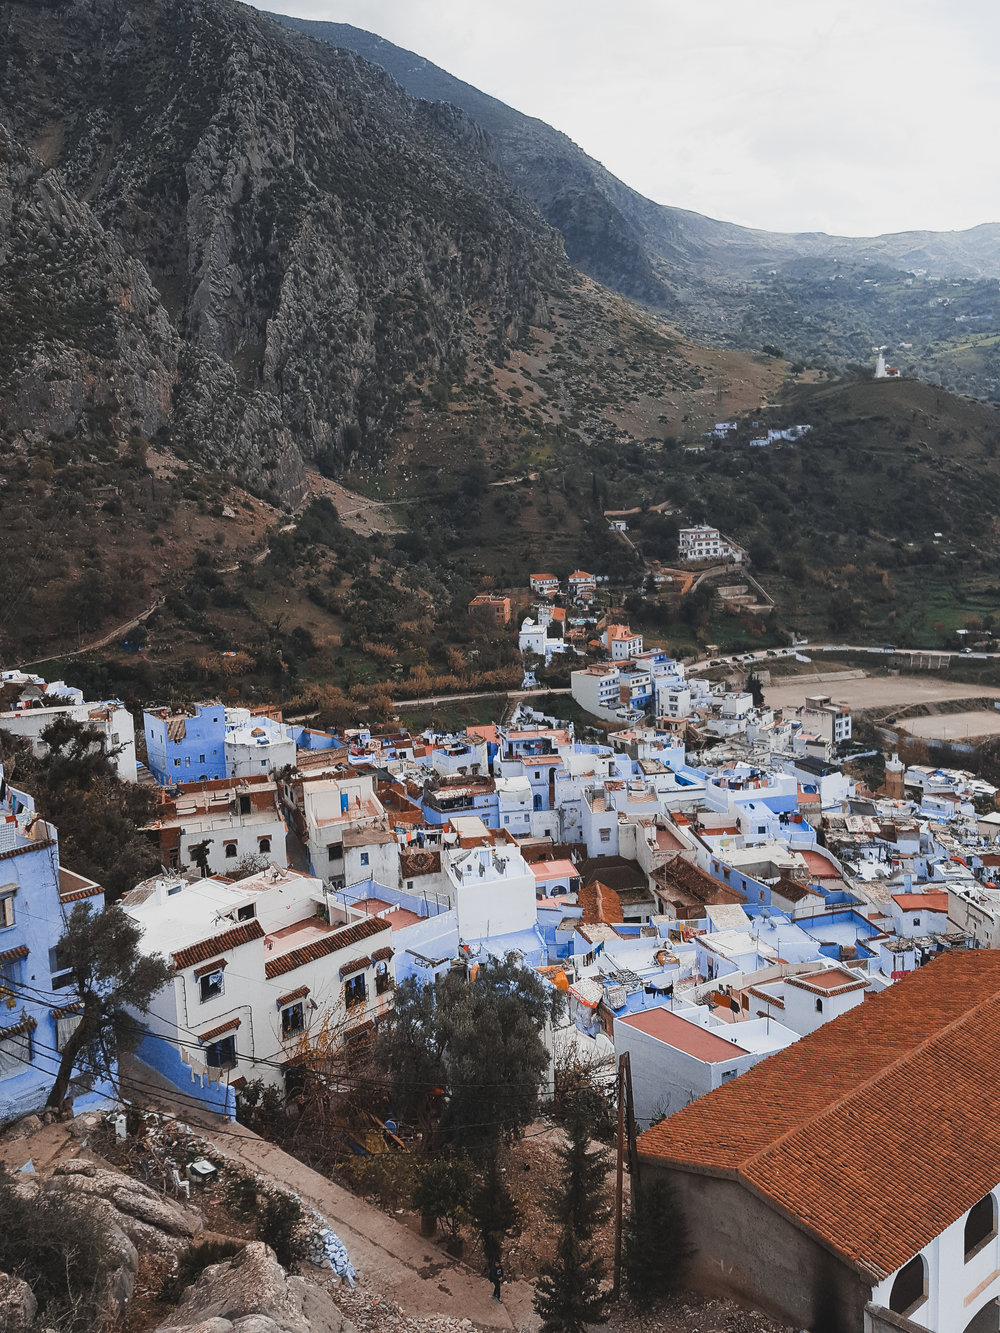 View from above in Chefchaouen, Morocco